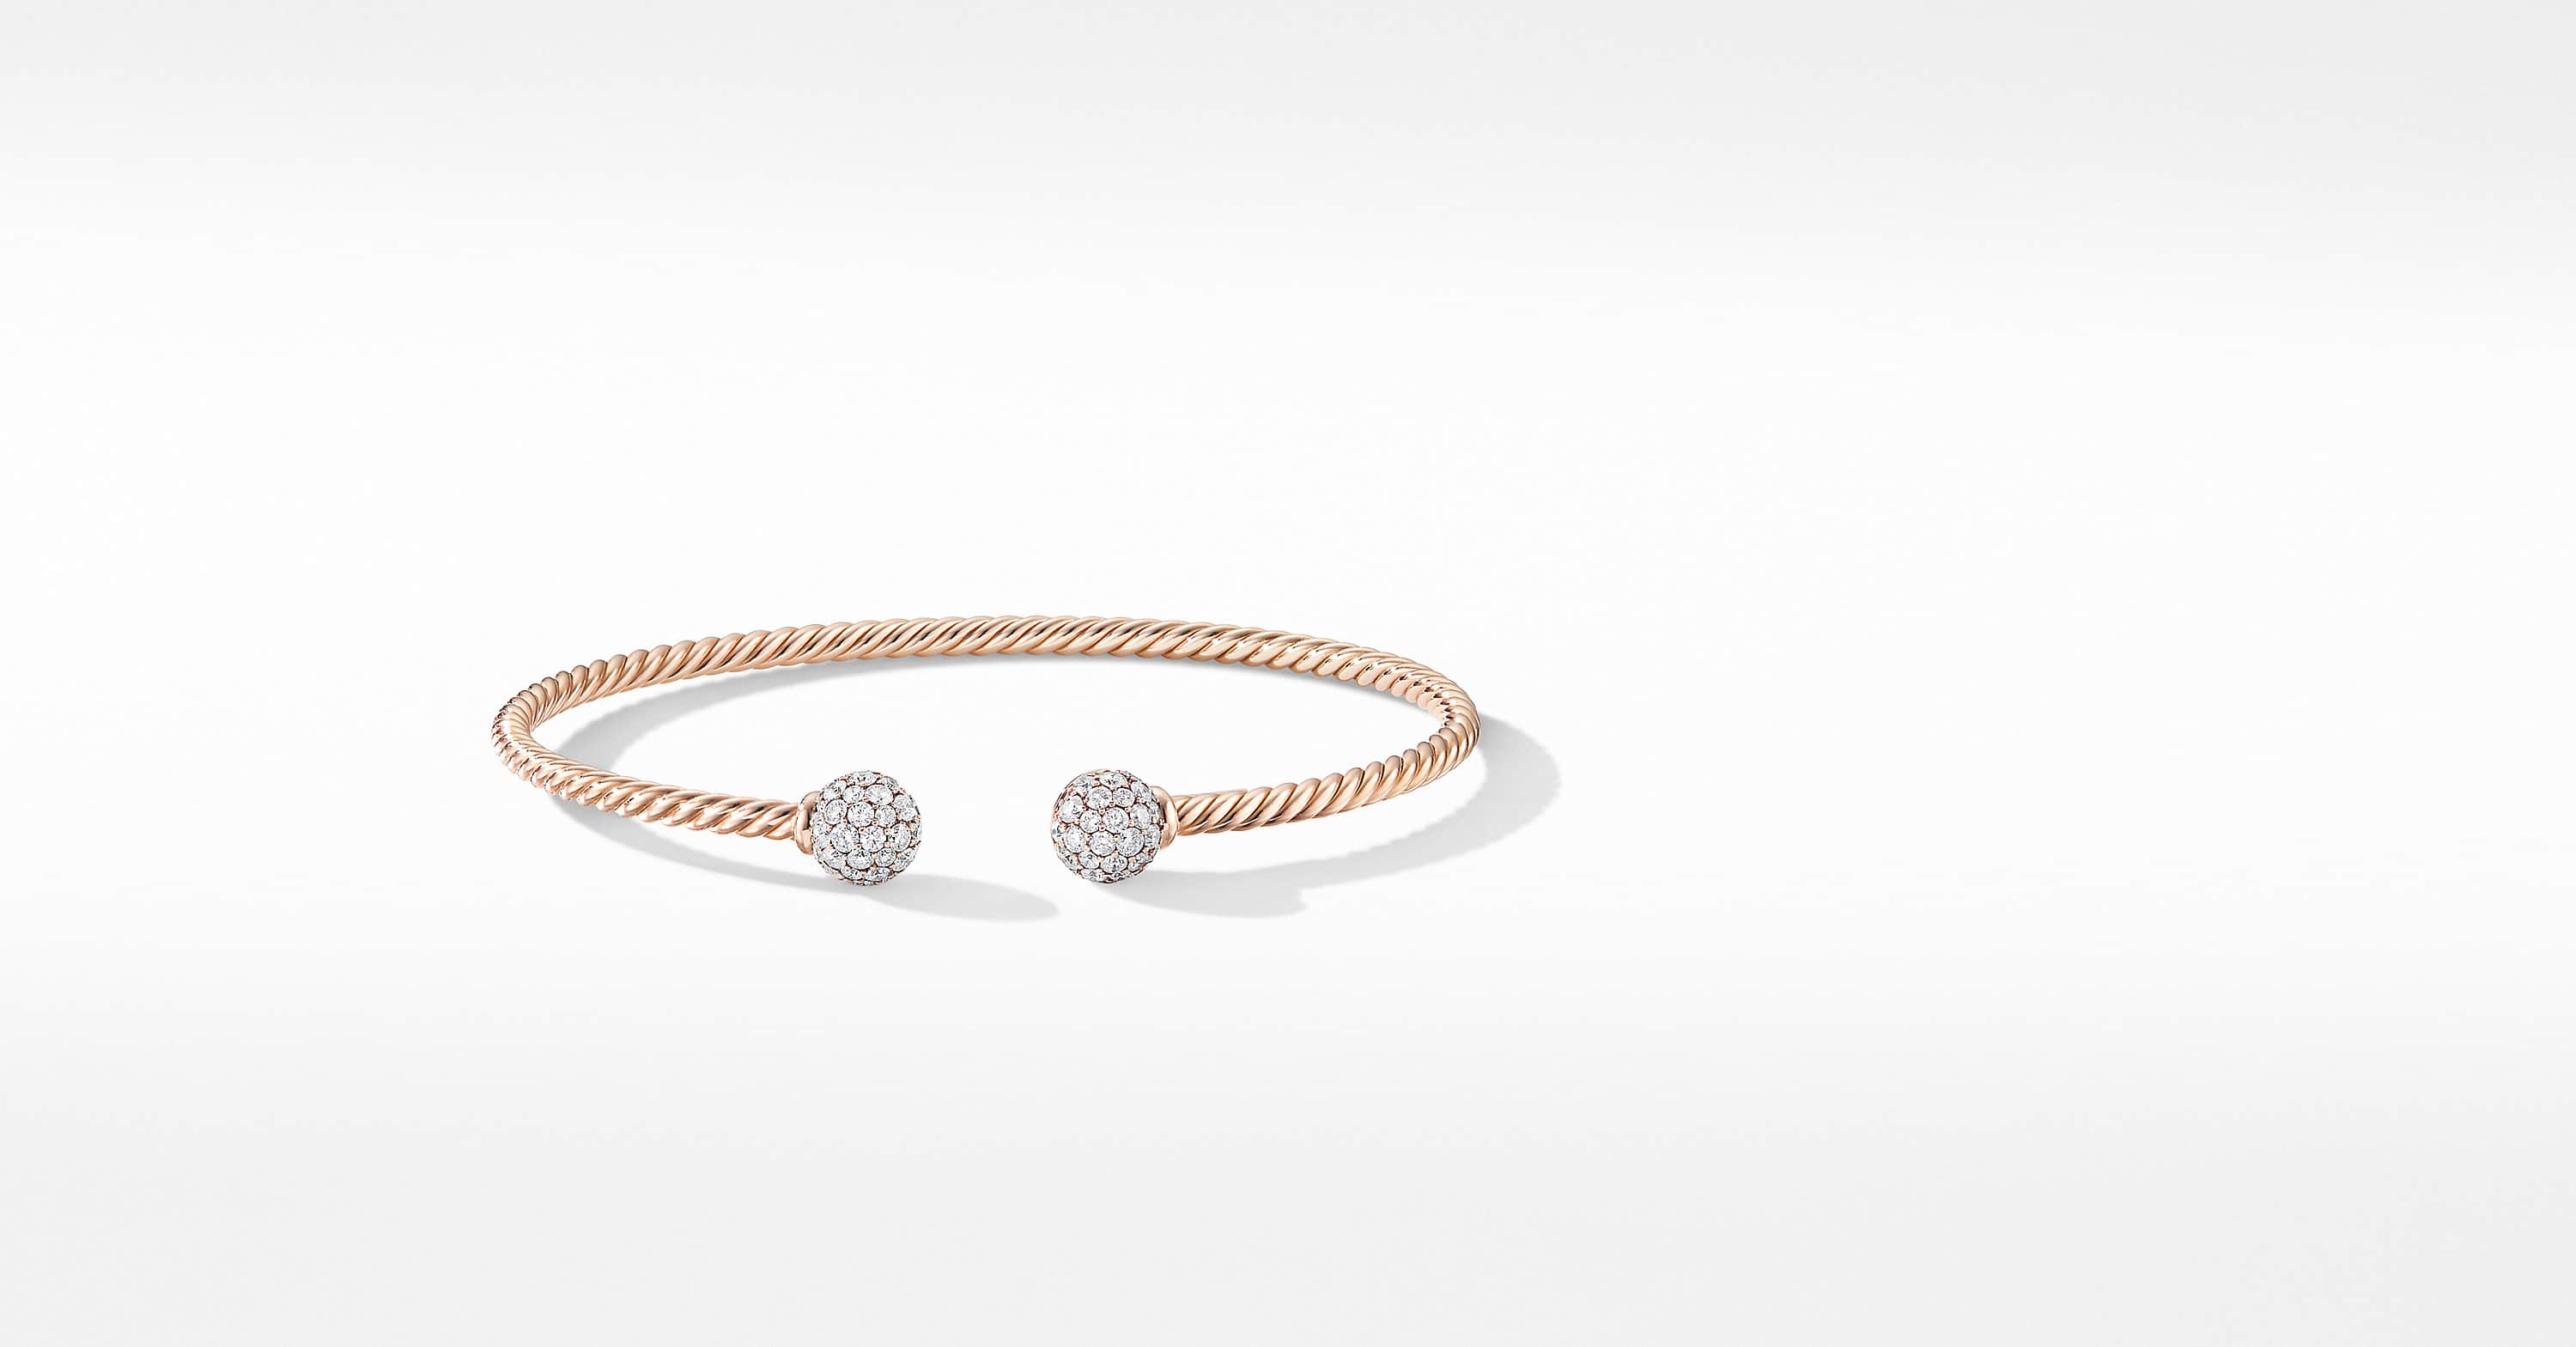 Solari Bracelet in 18K Rose Gold with Diamonds